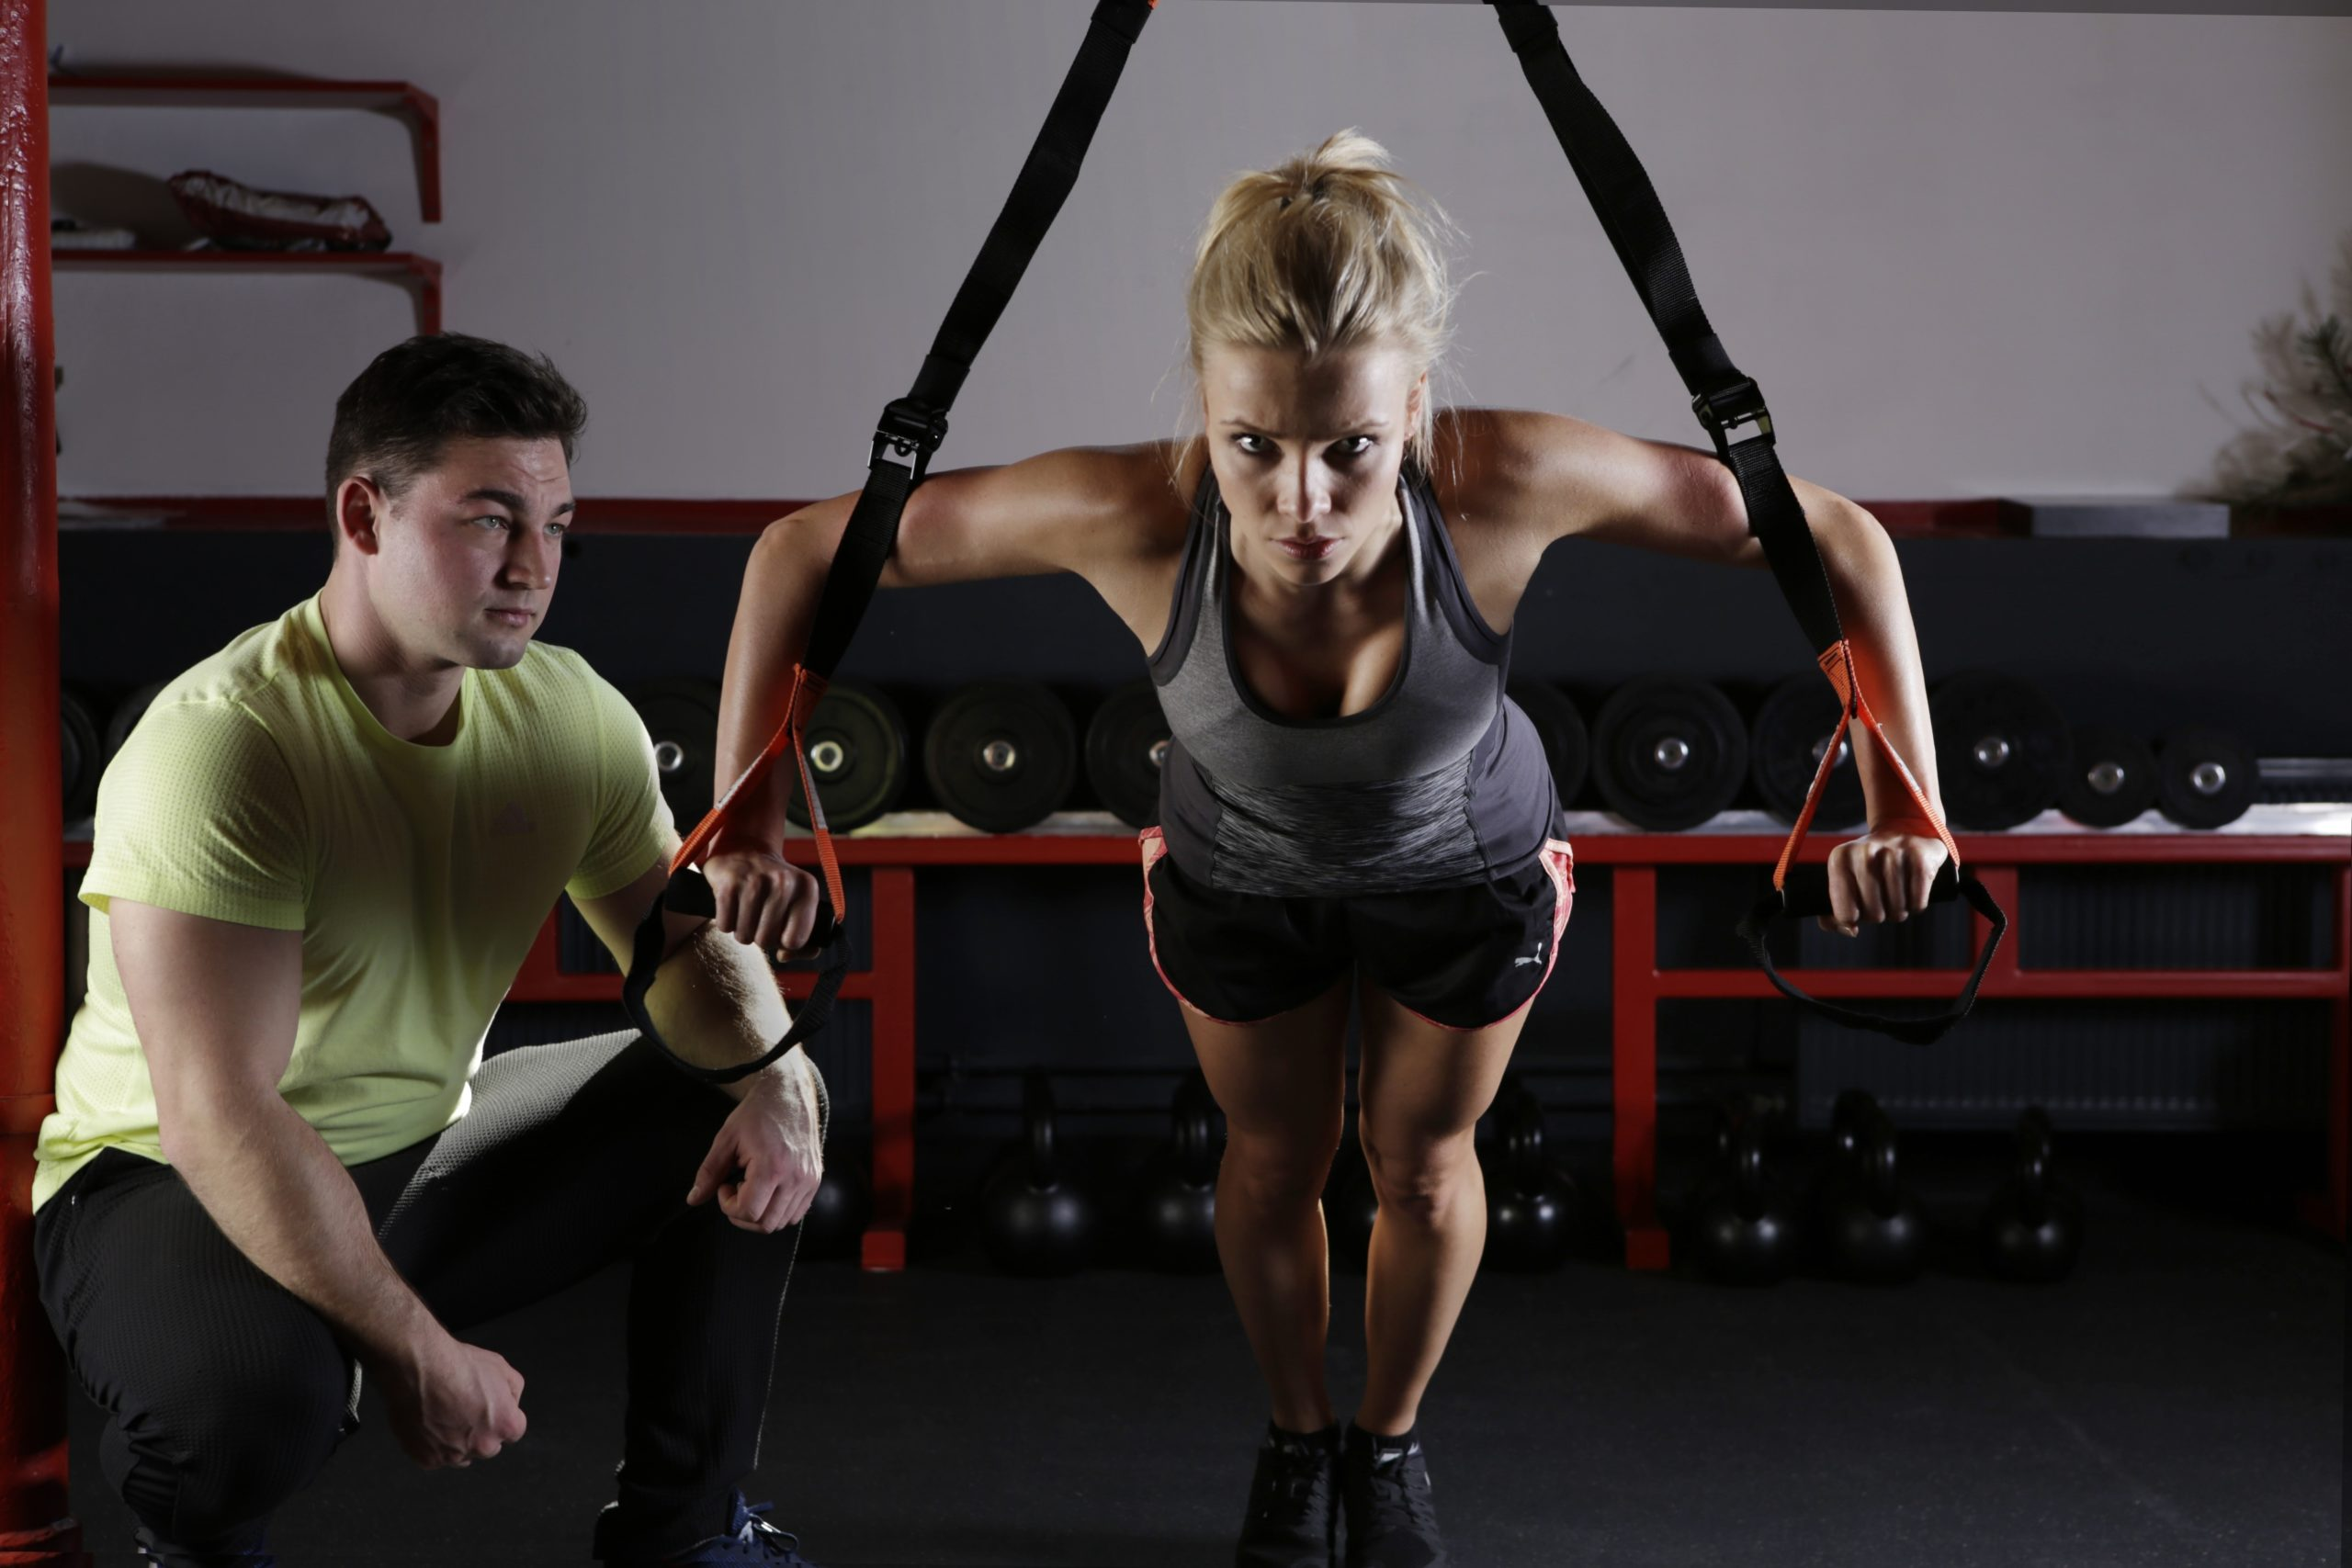 Workout For Women Is Necessary